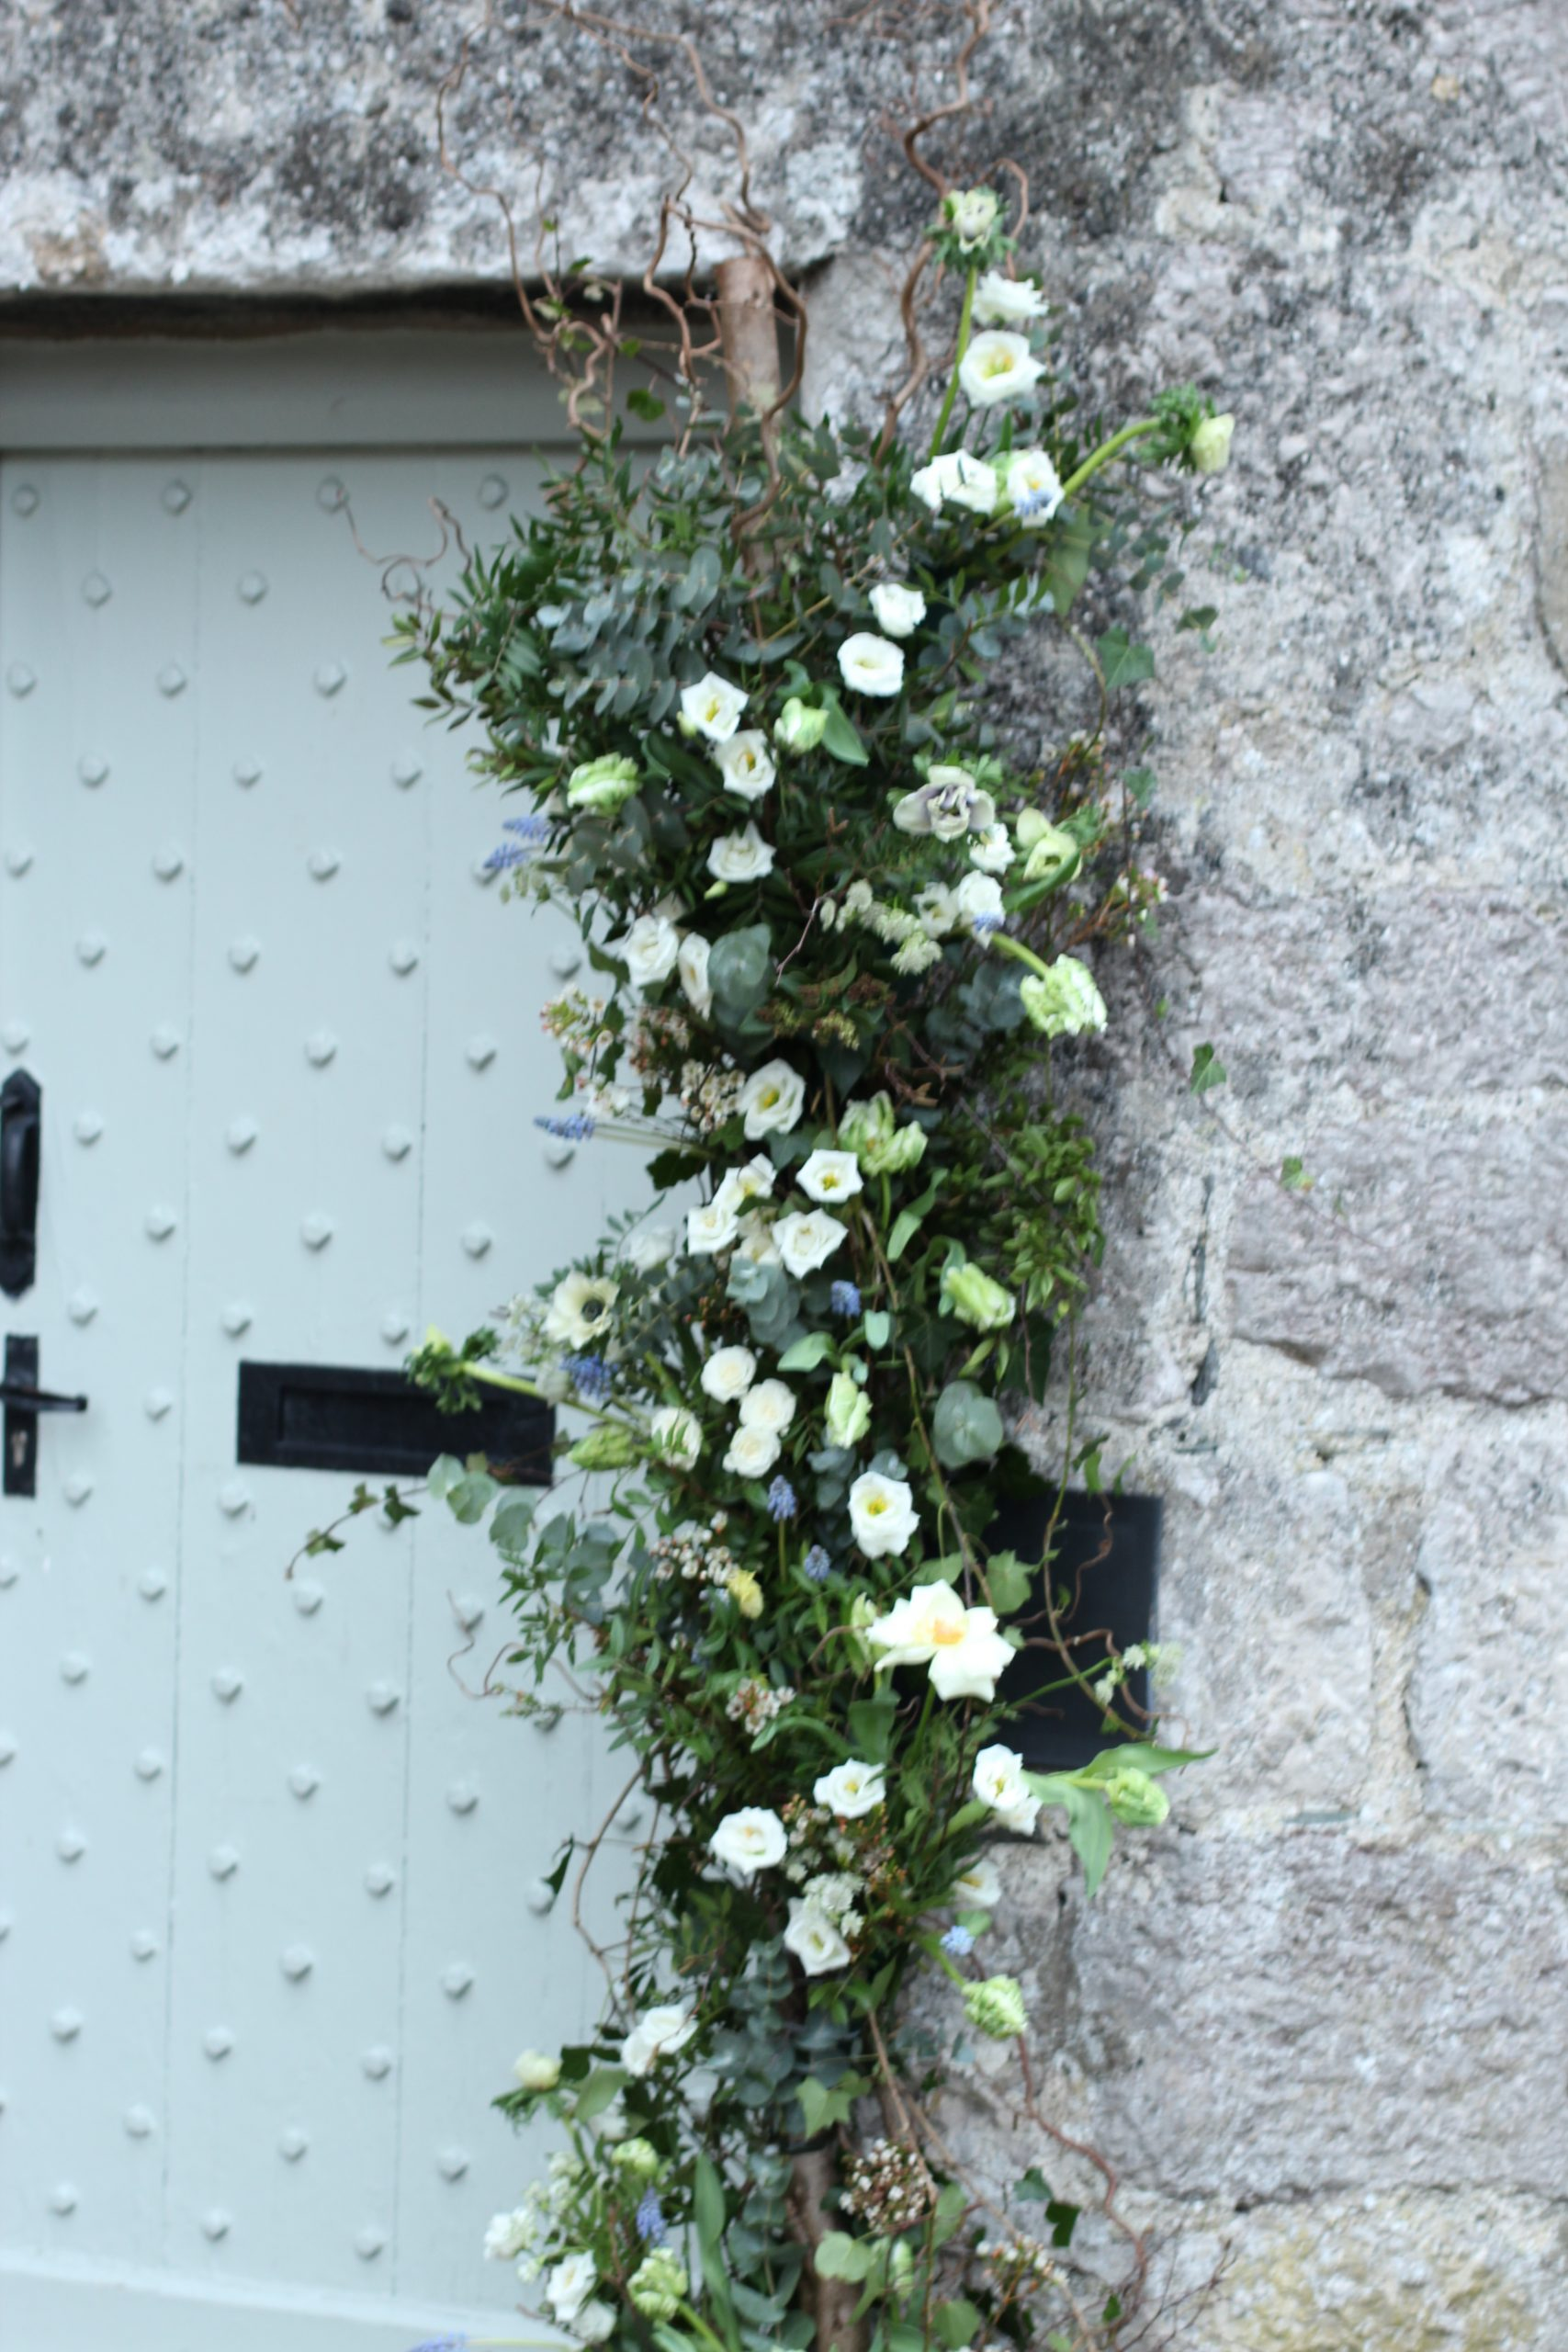 Spring flower arch against stone wall. Green and white tones